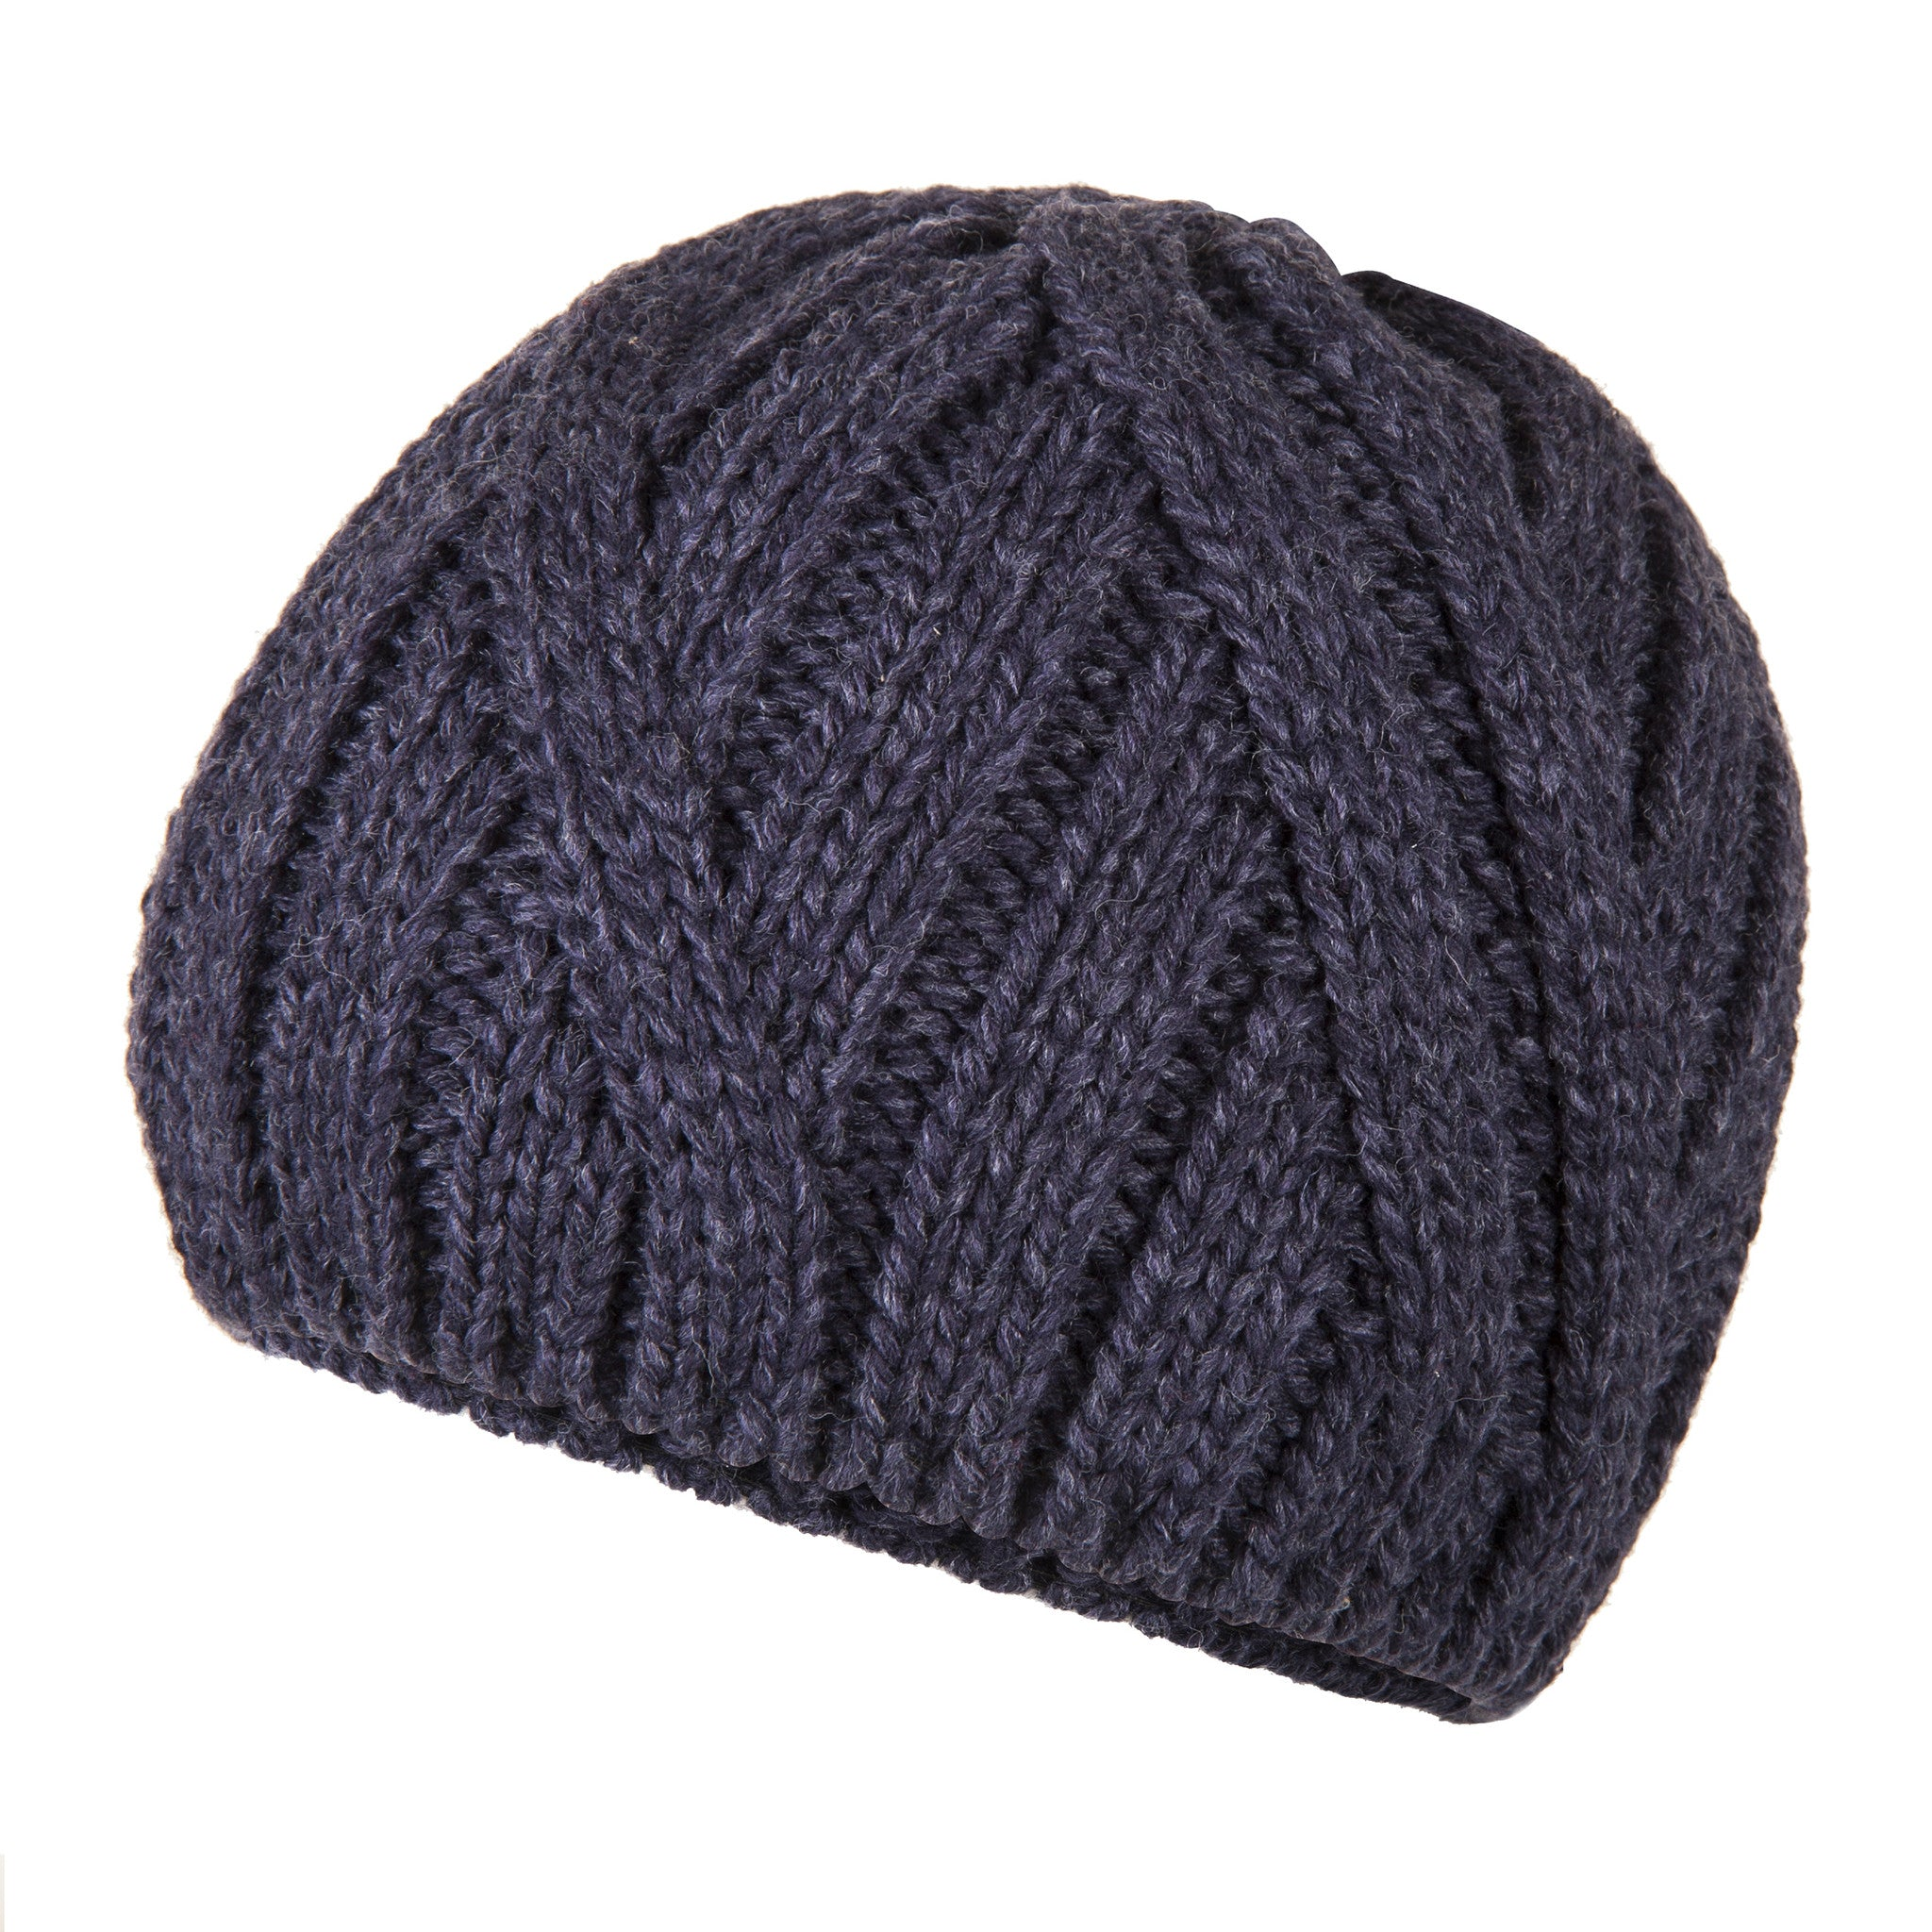 Bugatti - Wool Cable Beanie - The Cashmere Choice 8f76a8ddef2f